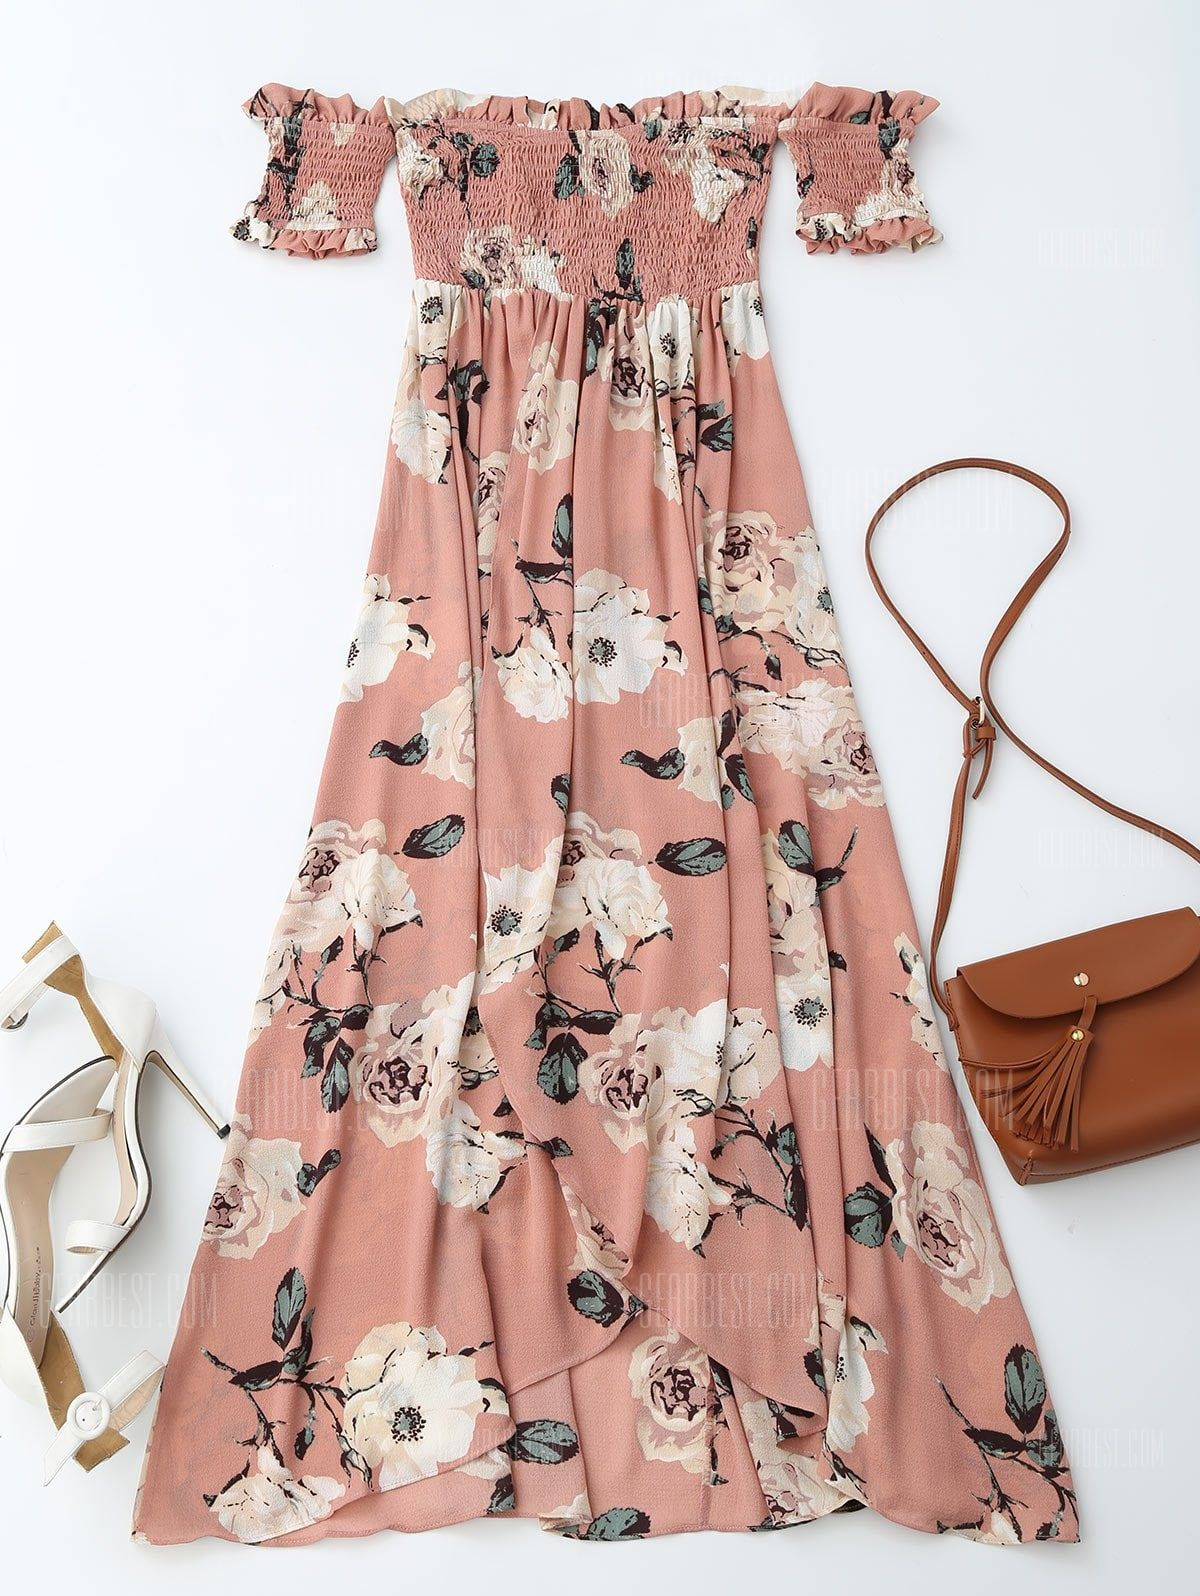 222f9231fced8 Only $26.39,buy Ruffles Off Shoulder Shirred Floral Maxi Dress at ...